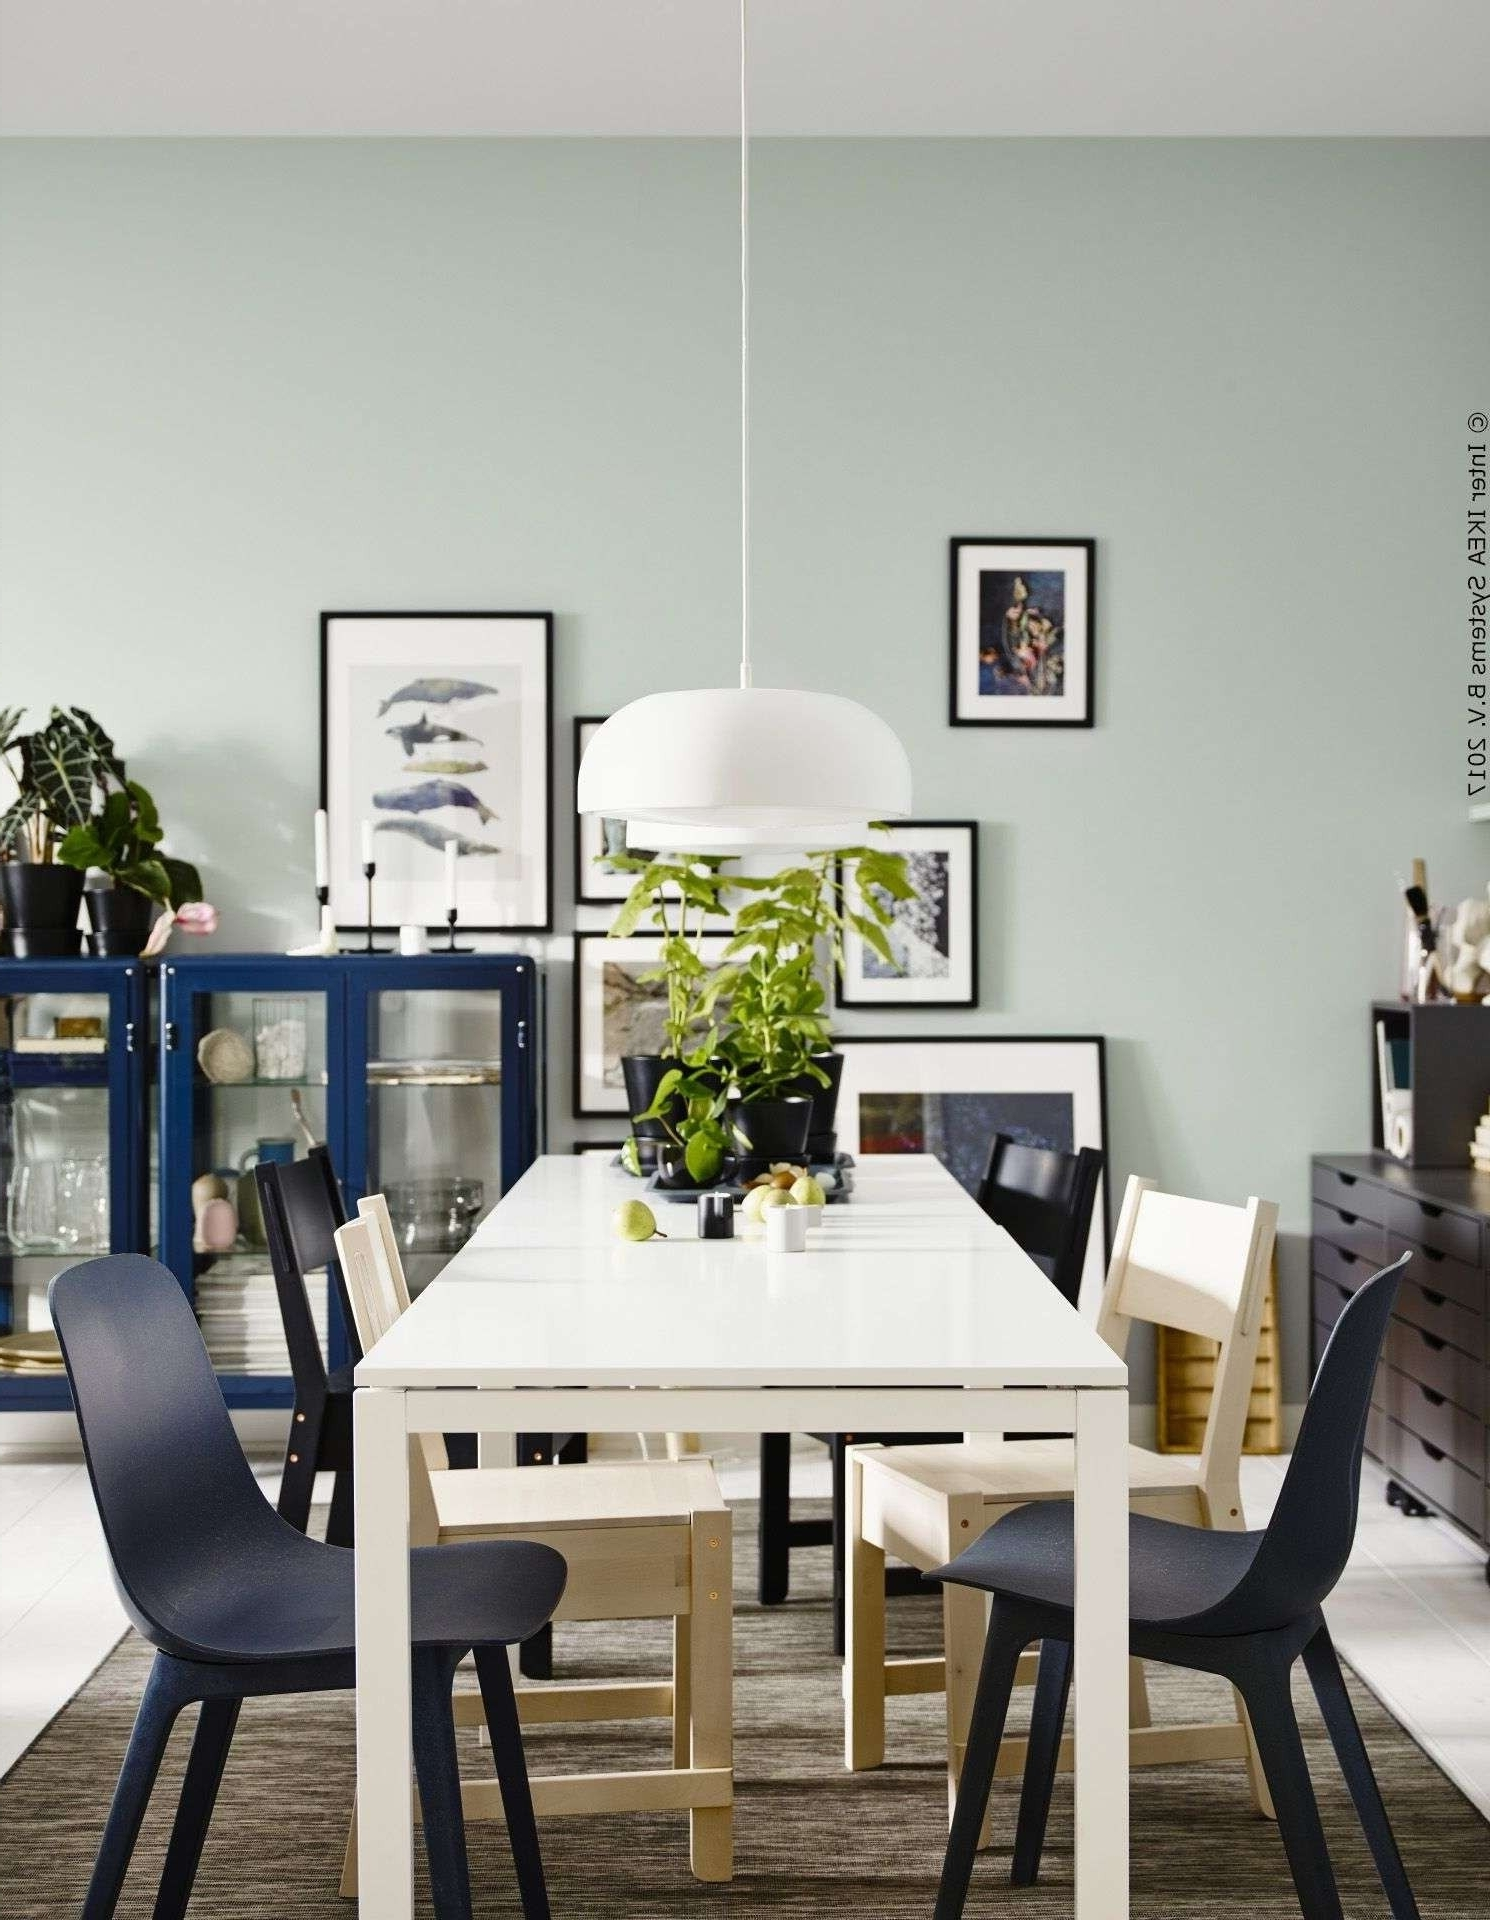 Extendable Dining Room Tables And Chairs Intended For Trendy Extendable Dining Tables For Small Spaces Inspirational White Round (View 10 of 25)